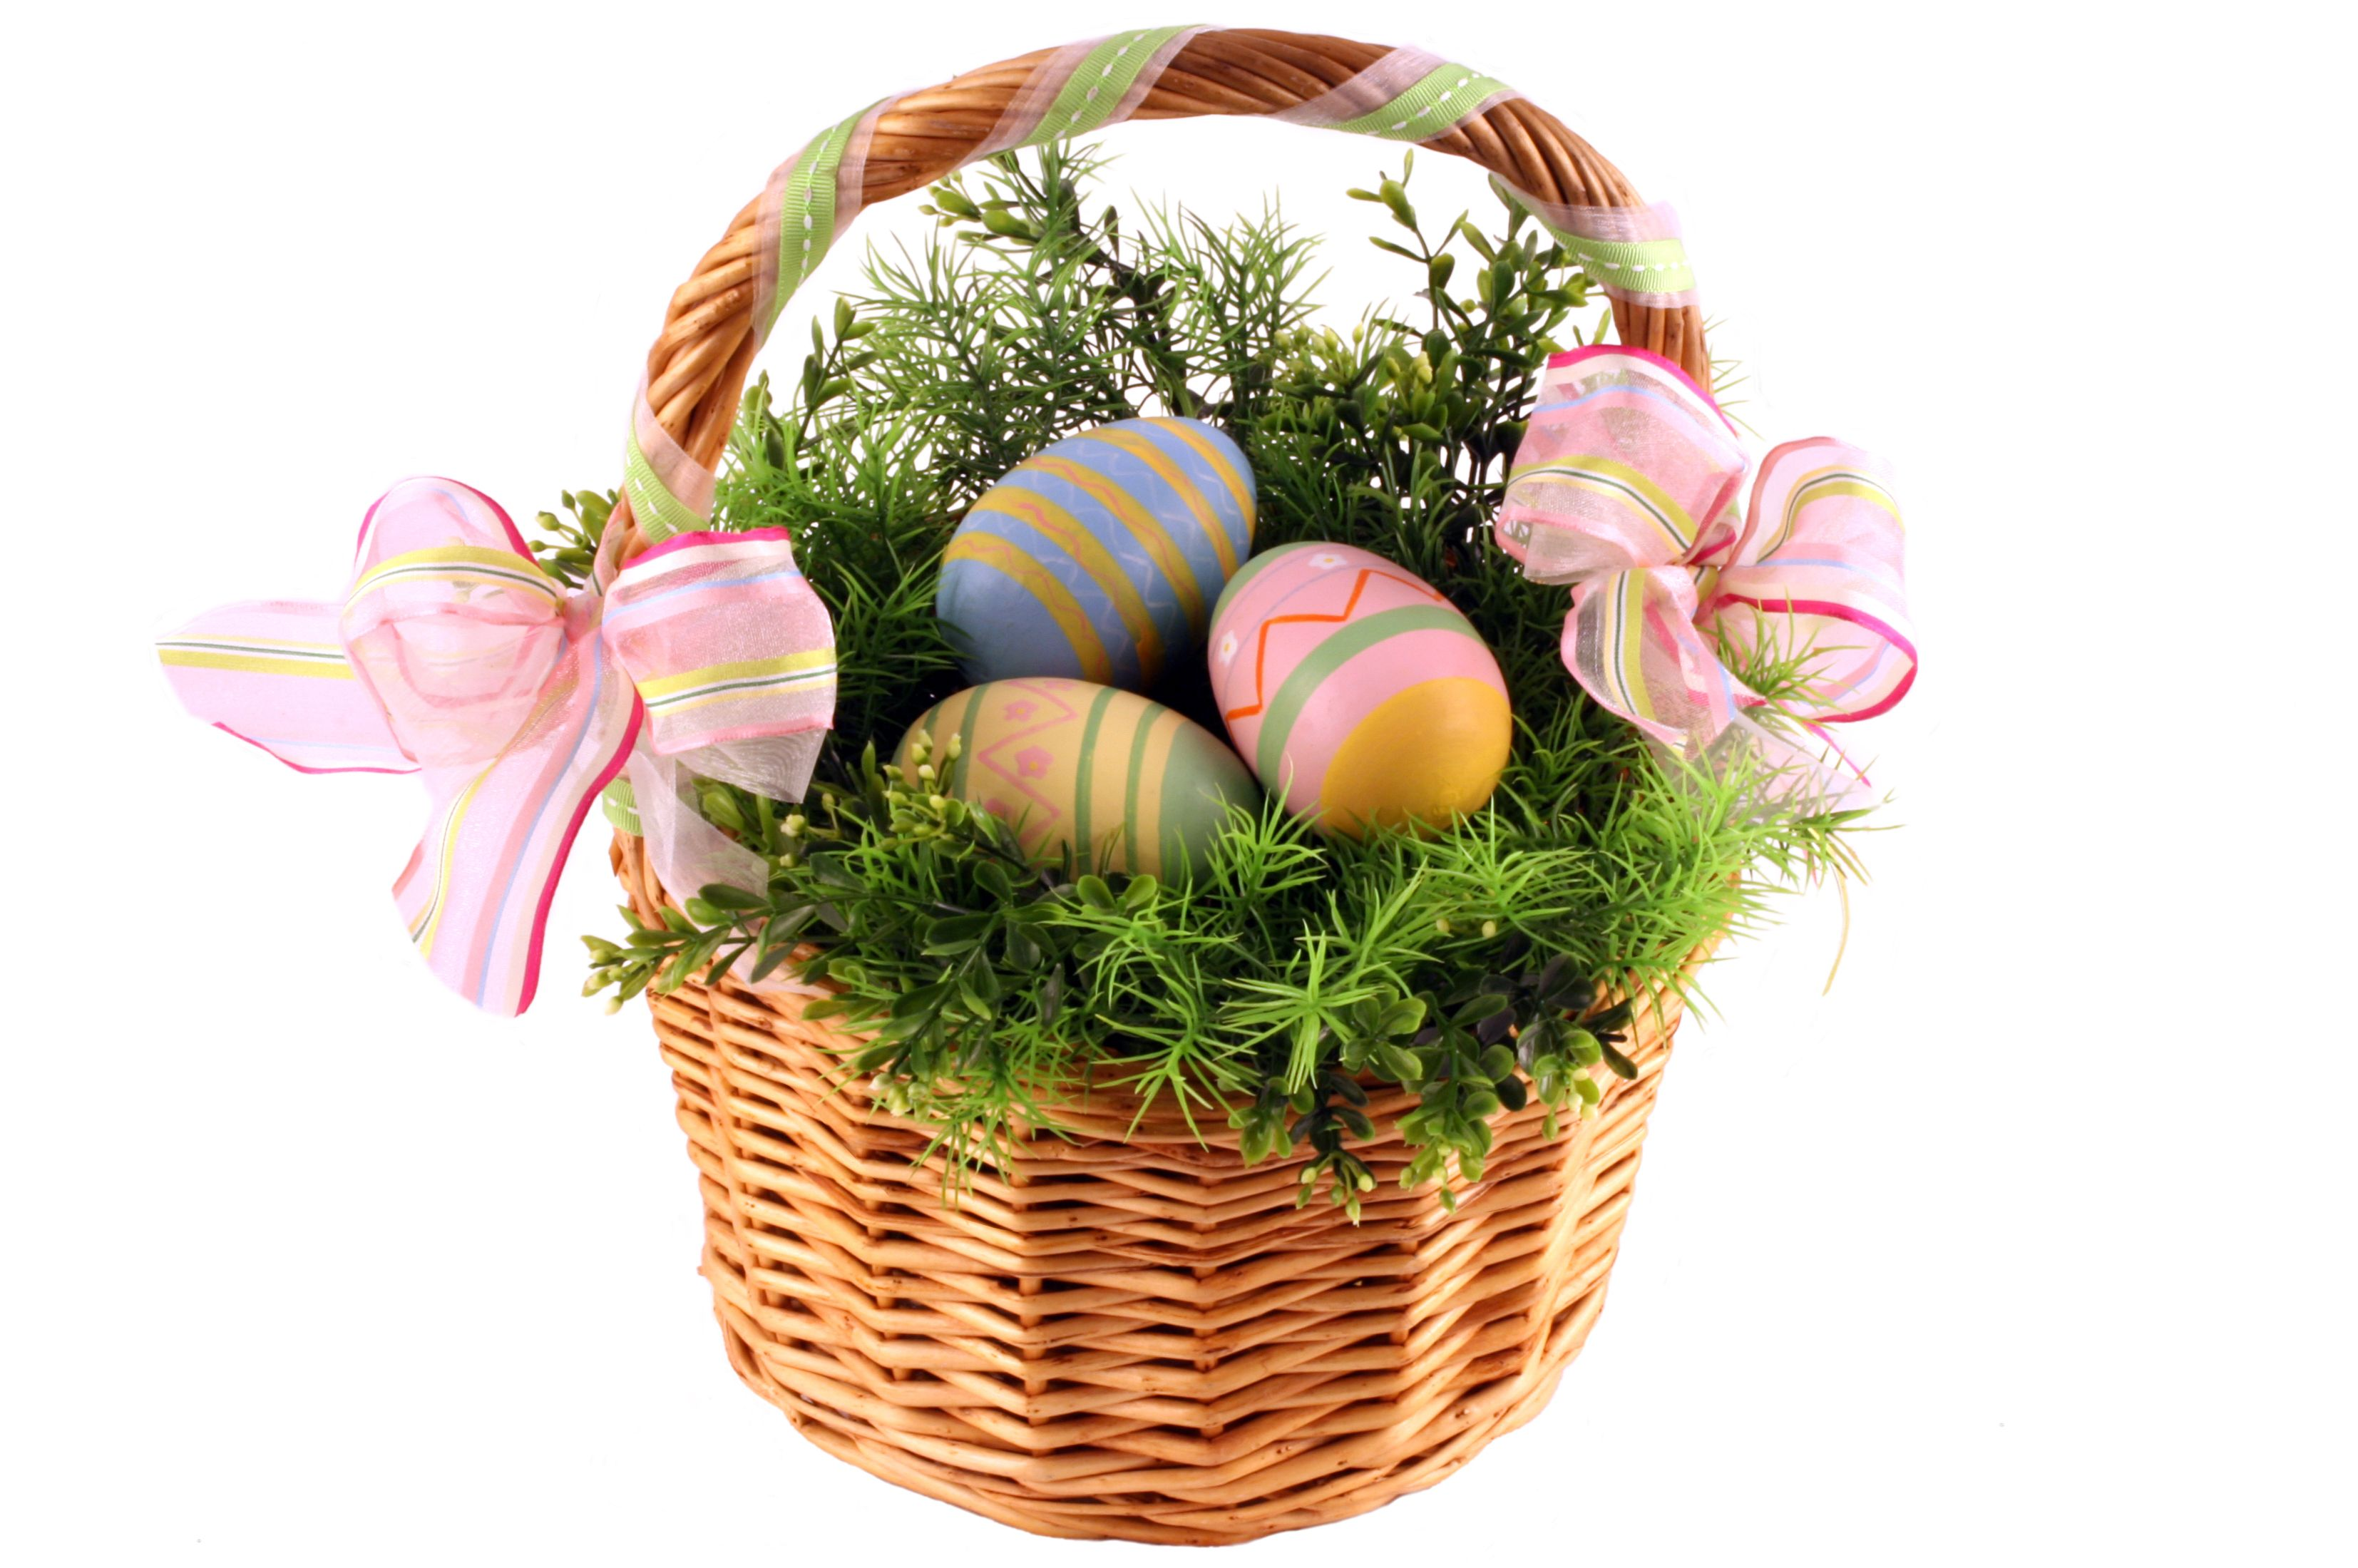 Magnificent rattan easter basket idea with chic mesh ribbons and magnificent rattan easter basket idea with chic mesh ribbons and natural green plants ornament also decorative negle Image collections